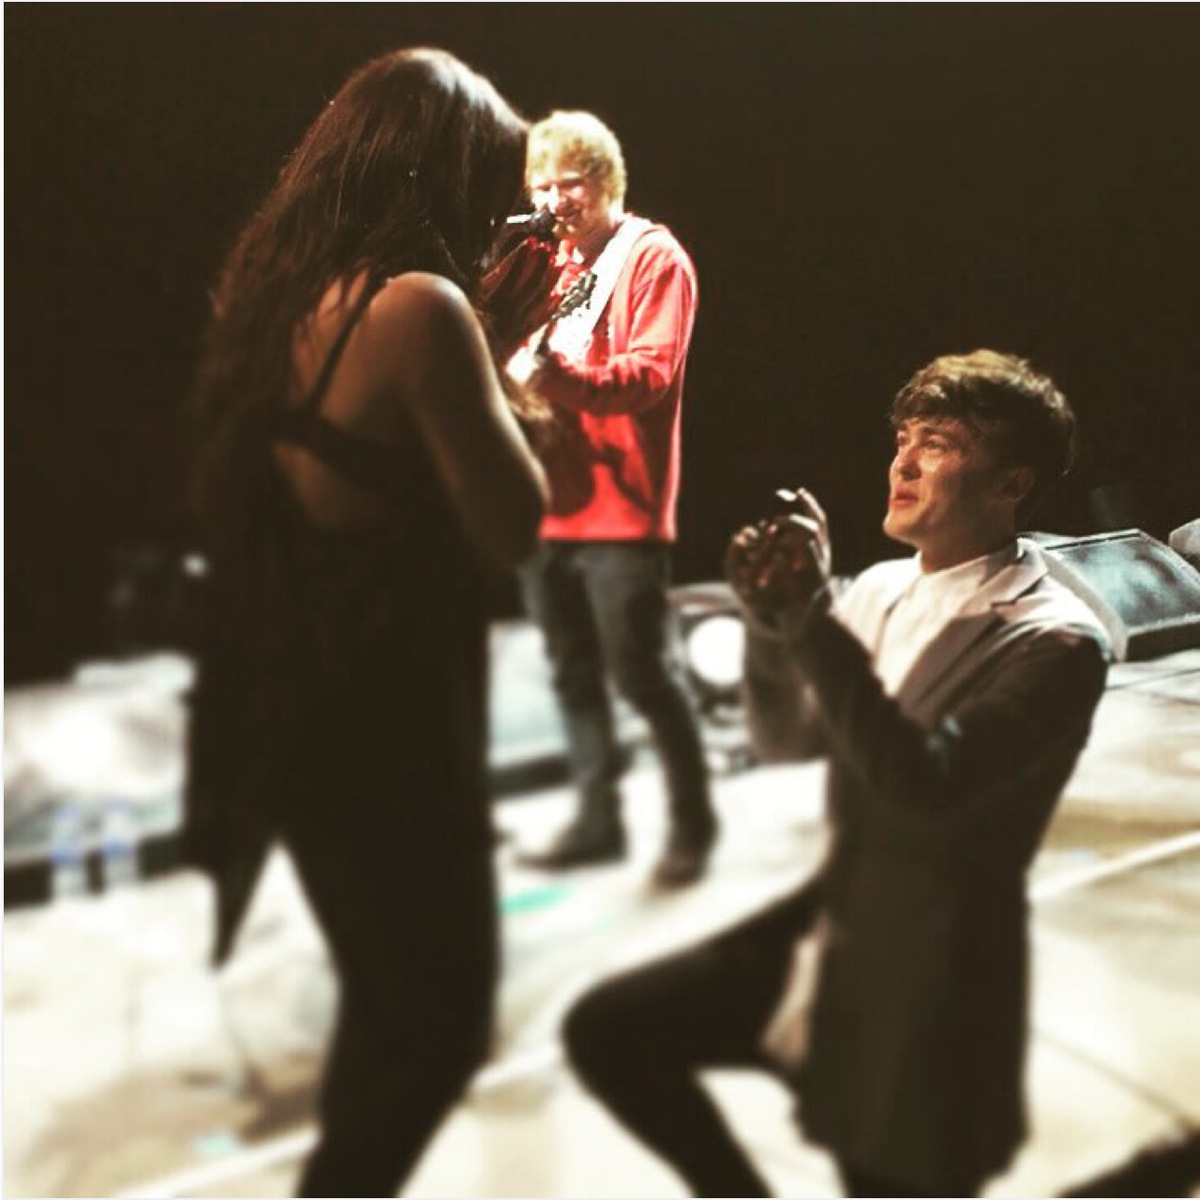 EXCLUSIVE: Little Mix's Jesy Nelson & Rixton's Jake Roche engaged at #Key103SummerLive -http://t.co/e1iKJdMhBK http://t.co/K0DQWu8edJ